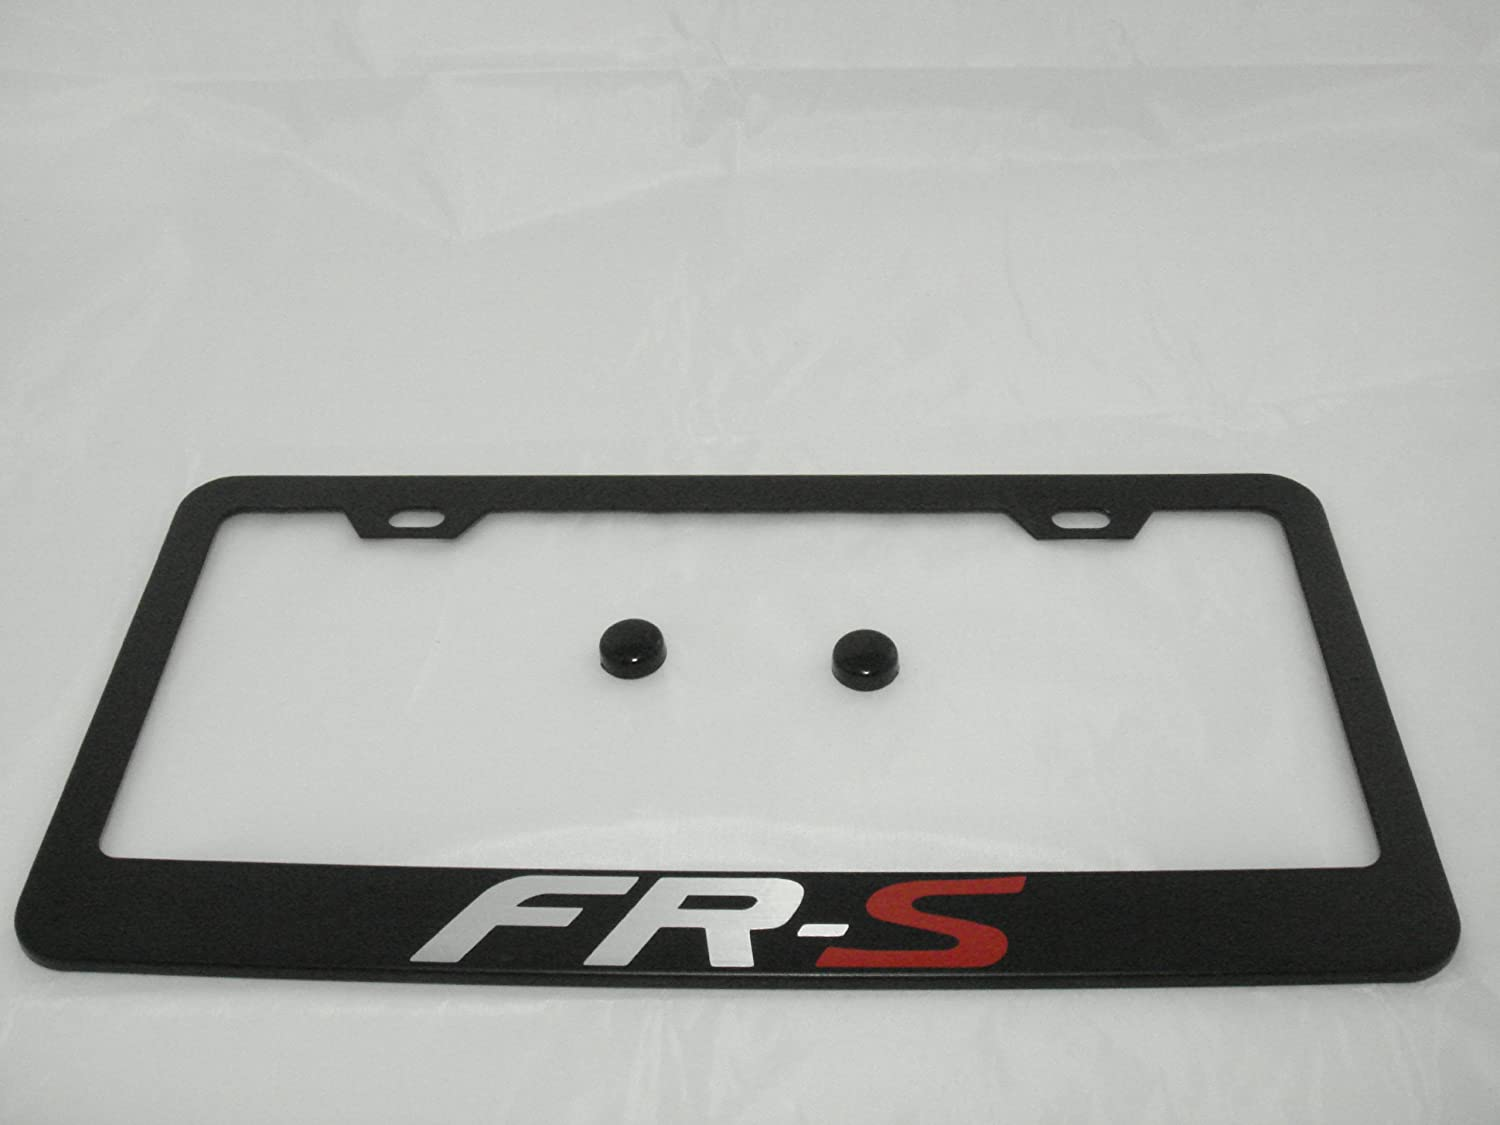 Amazon.com: Scion FR-S Black License Plate Frame with Caps: Automotive